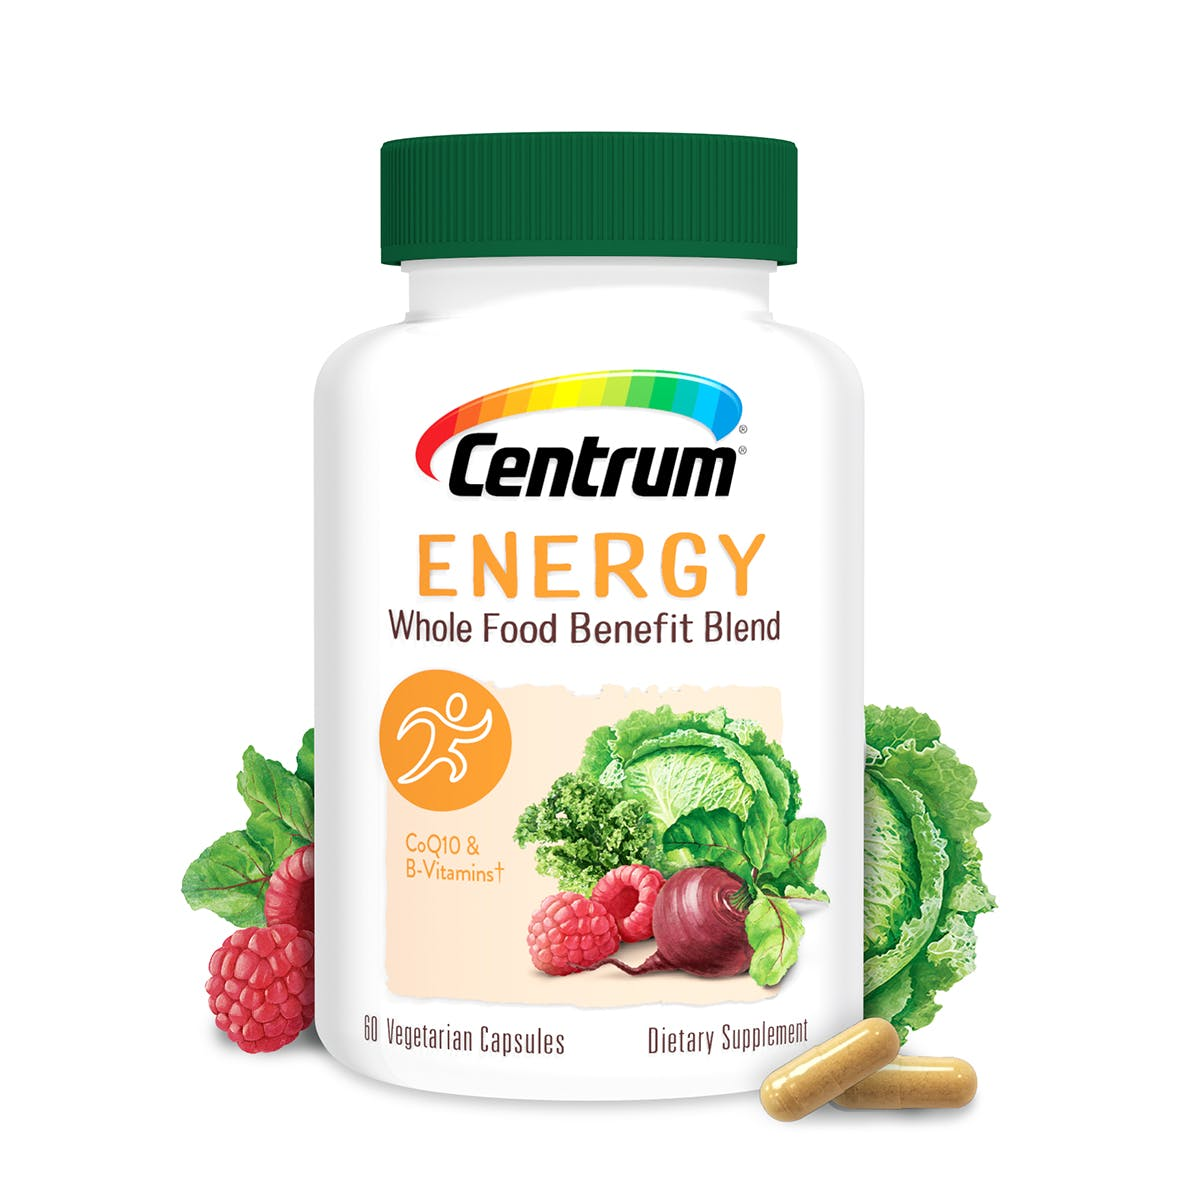 Centrum Energy Whole Food Blend Multivitamin